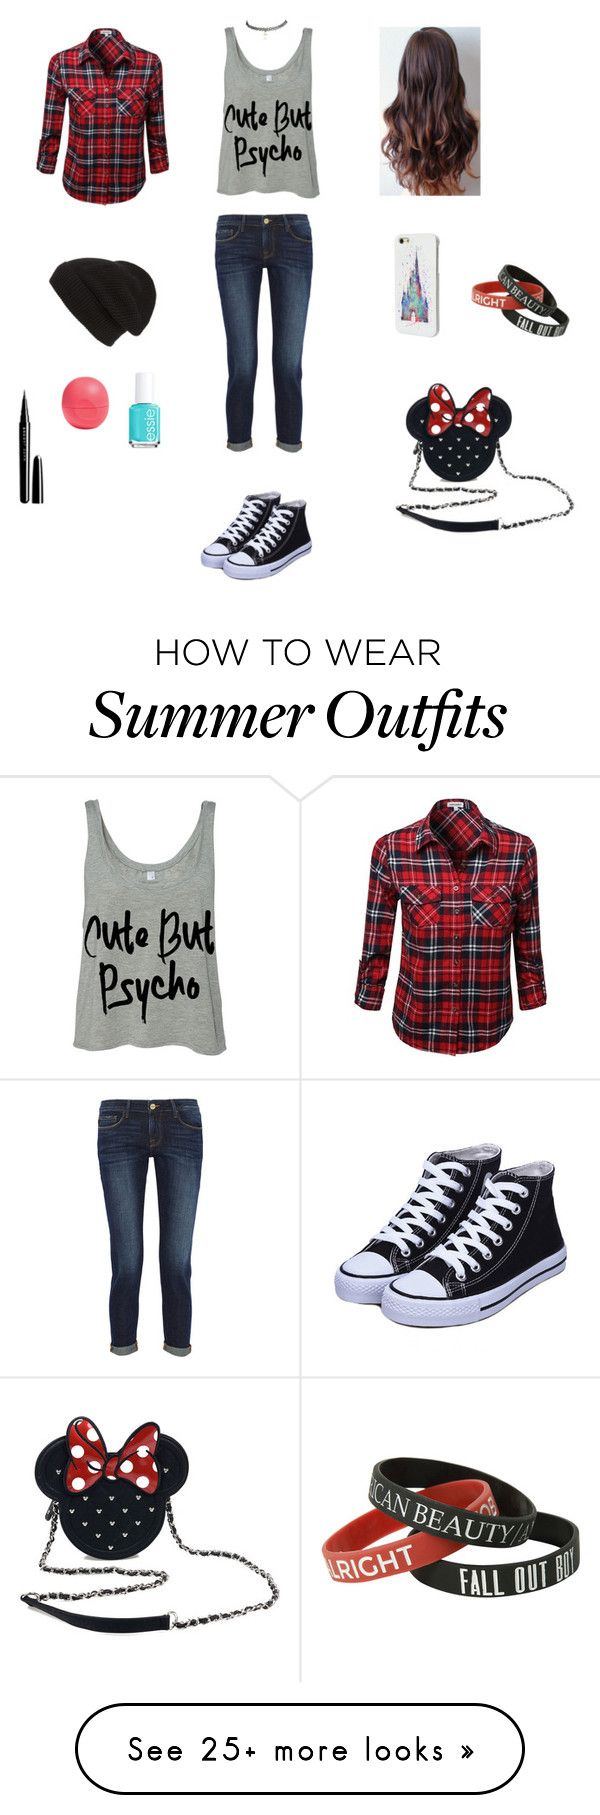 """Read D"" by trashchic on Polyvore featuring Frame Denim, Wet Seal, Disney, Loungefly, Eos, Essie, Marc Jacobs and Phase 3"